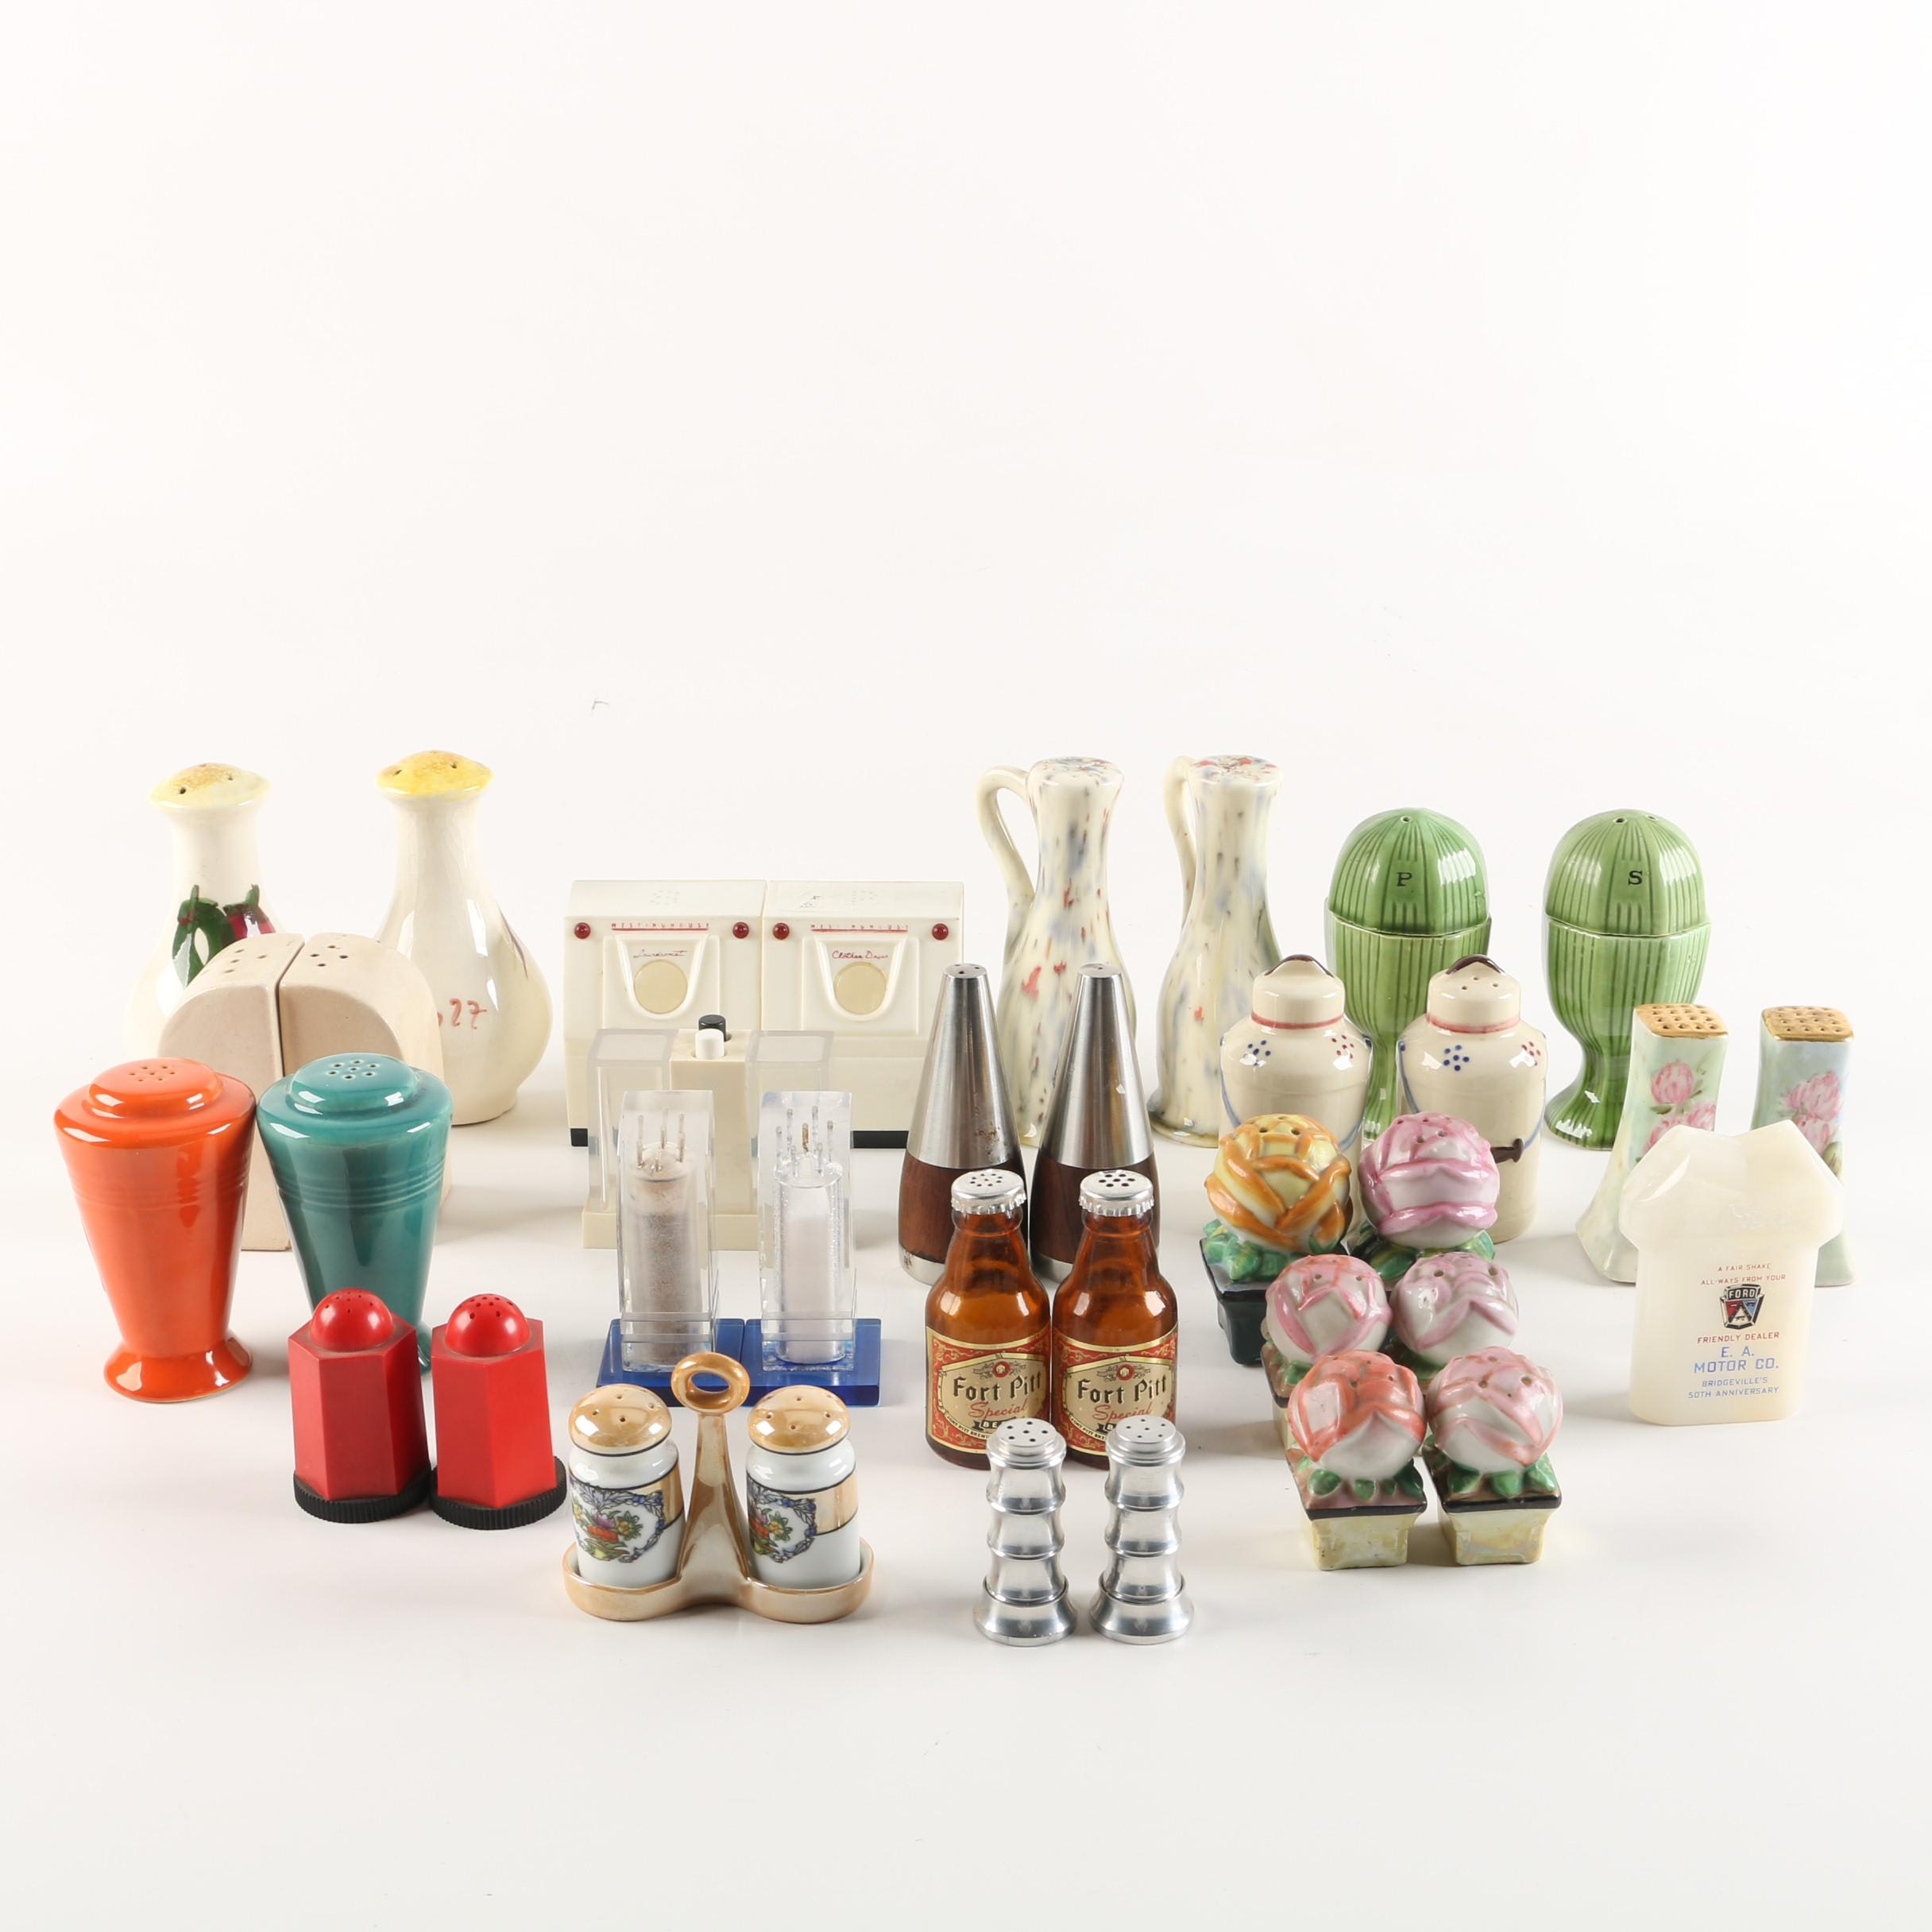 Mid Century Salt & Pepper Shakers including Danish Modern and Figurative